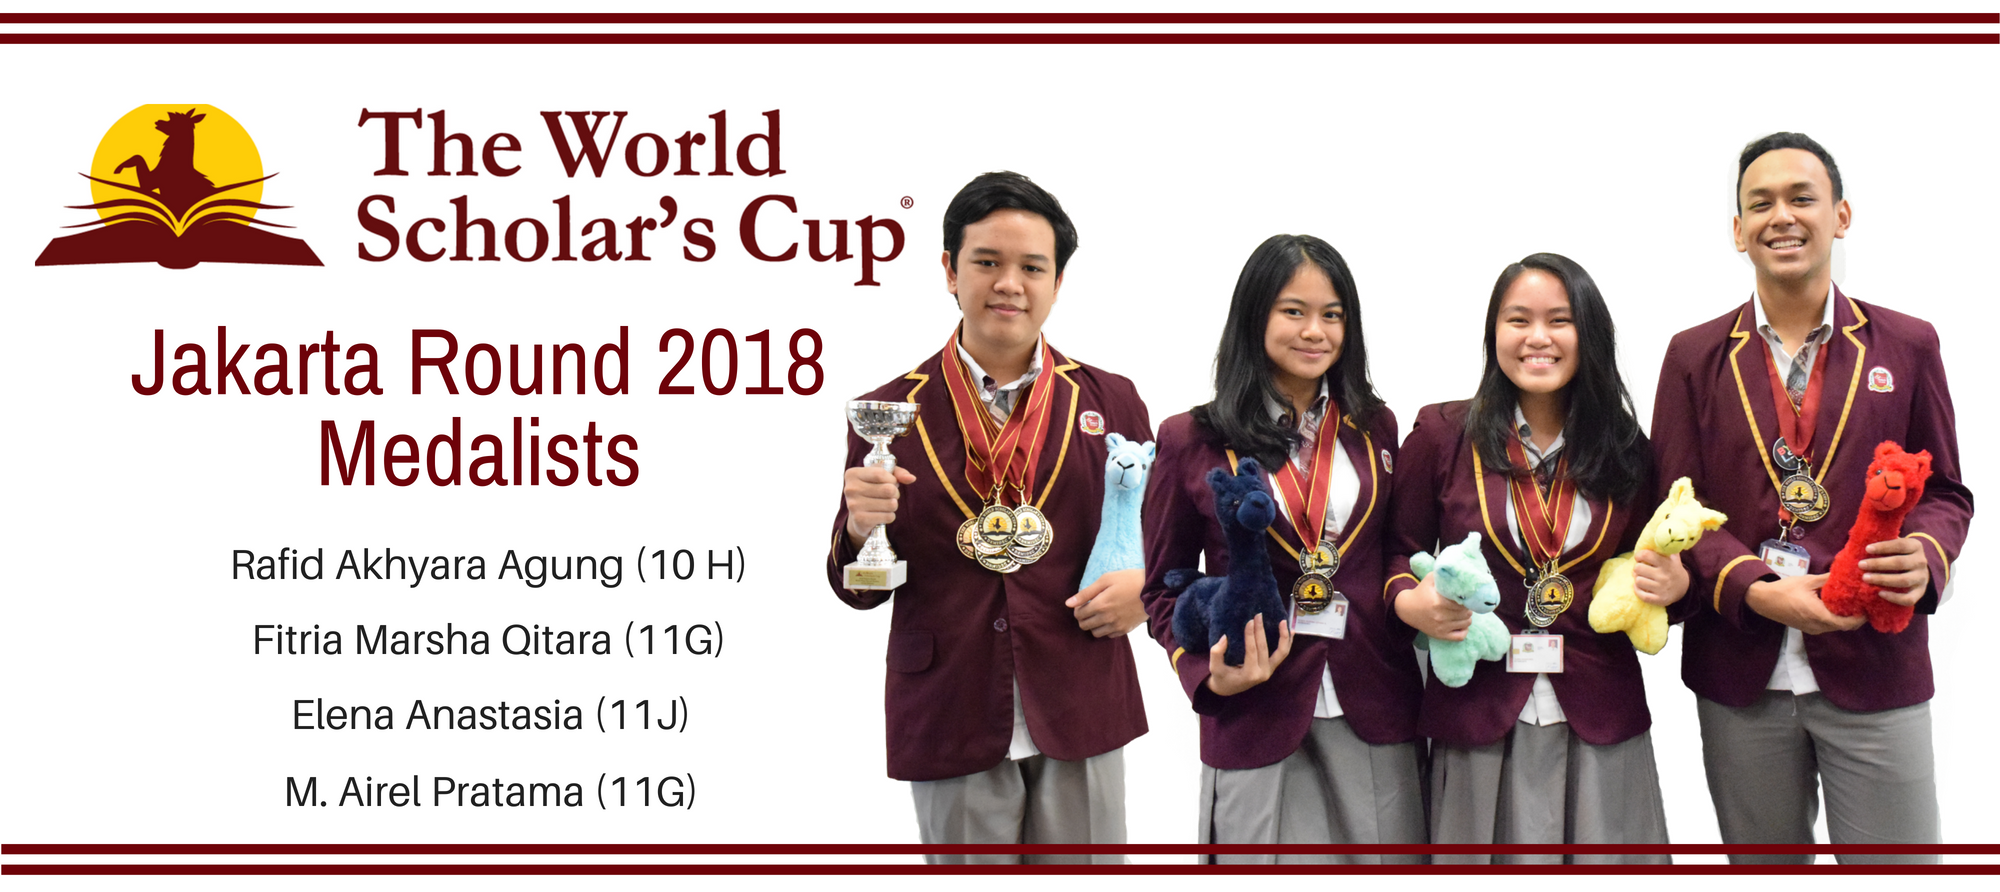 World Scholar's Cup 2018 Medalists